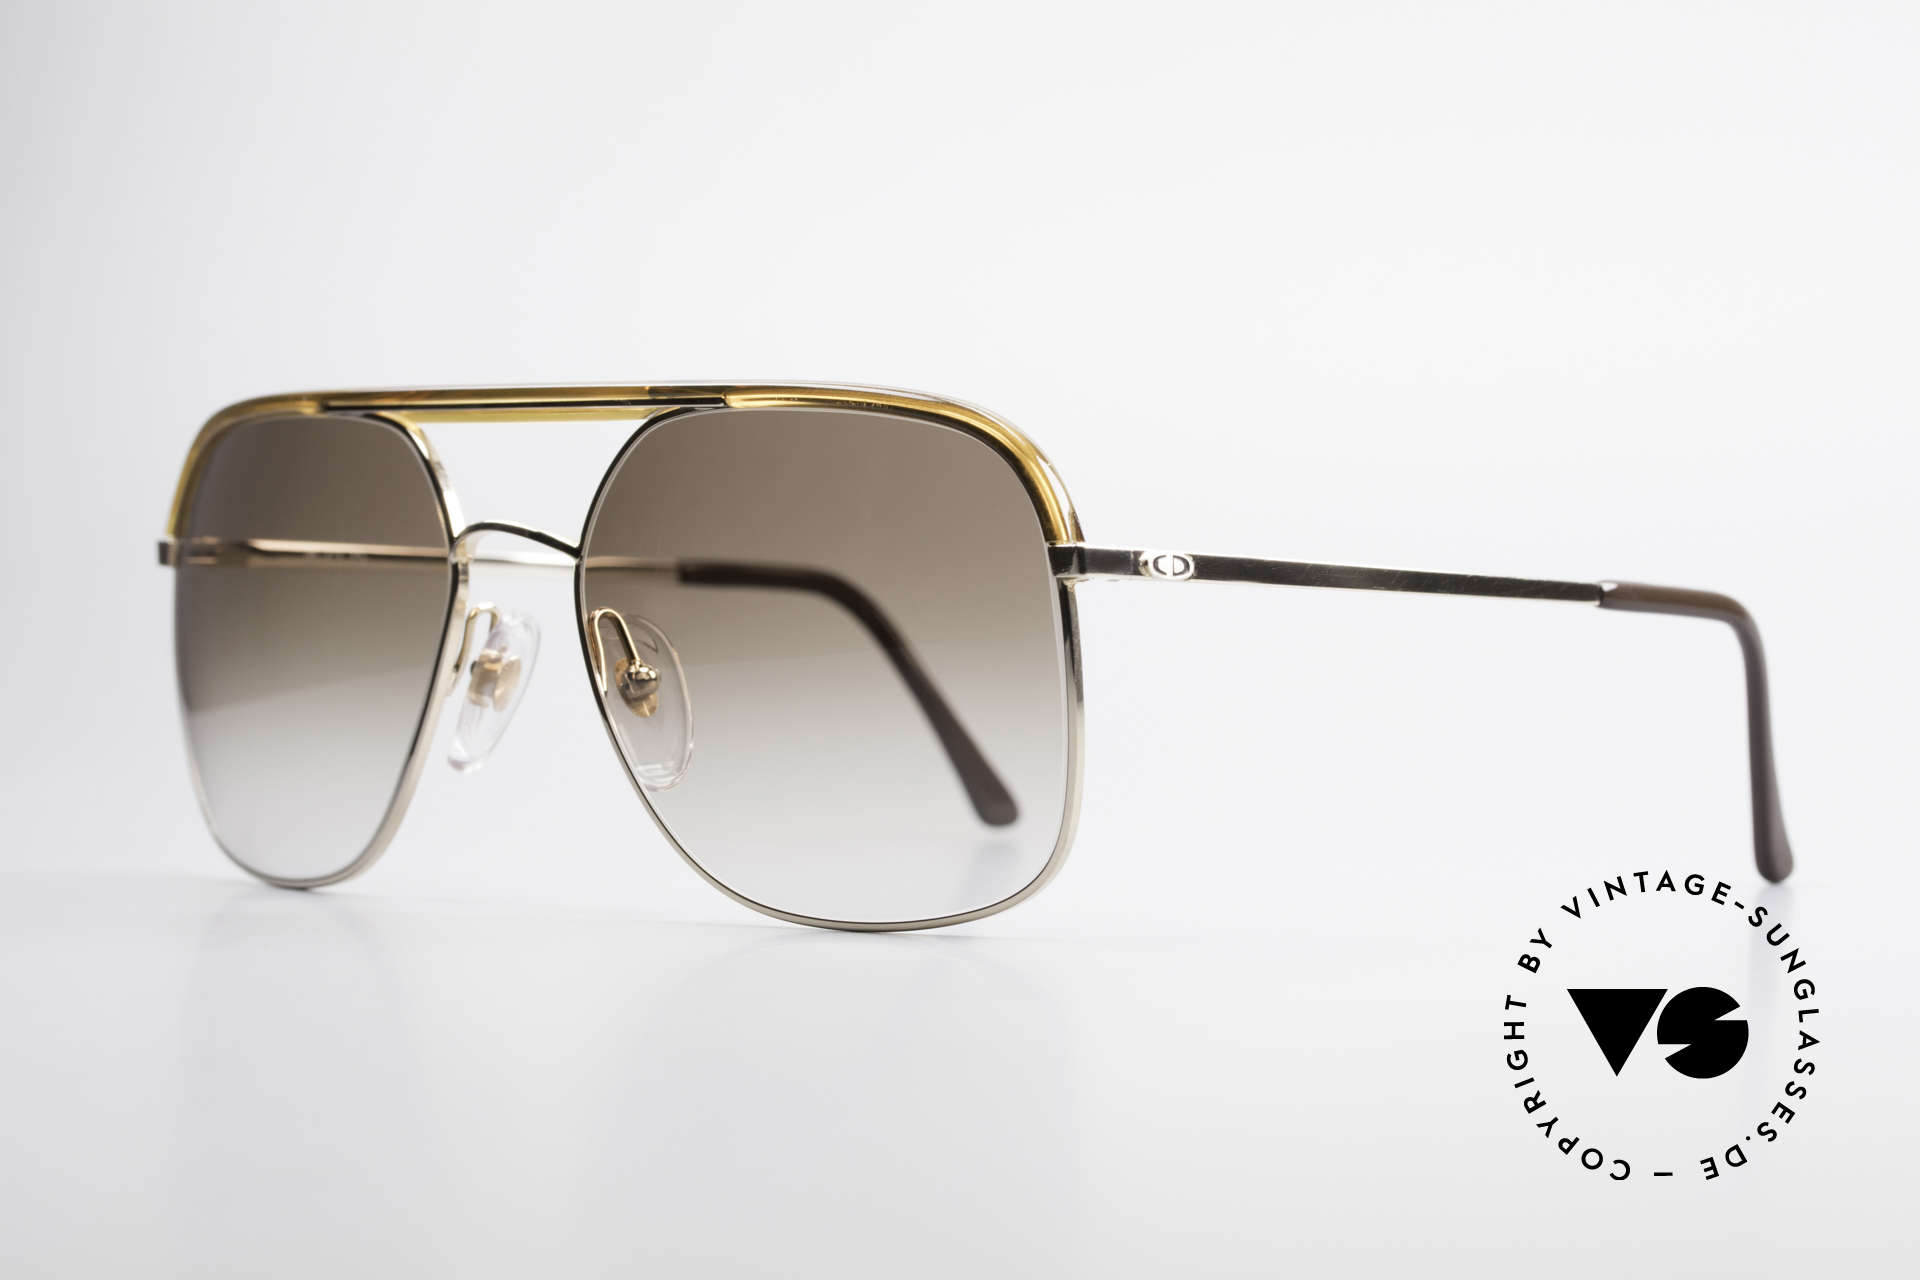 Christian Dior 2247 80's Men's Shades Vintage, classic 80's gentlemen look (distinctive, noble, striking), Made for Men